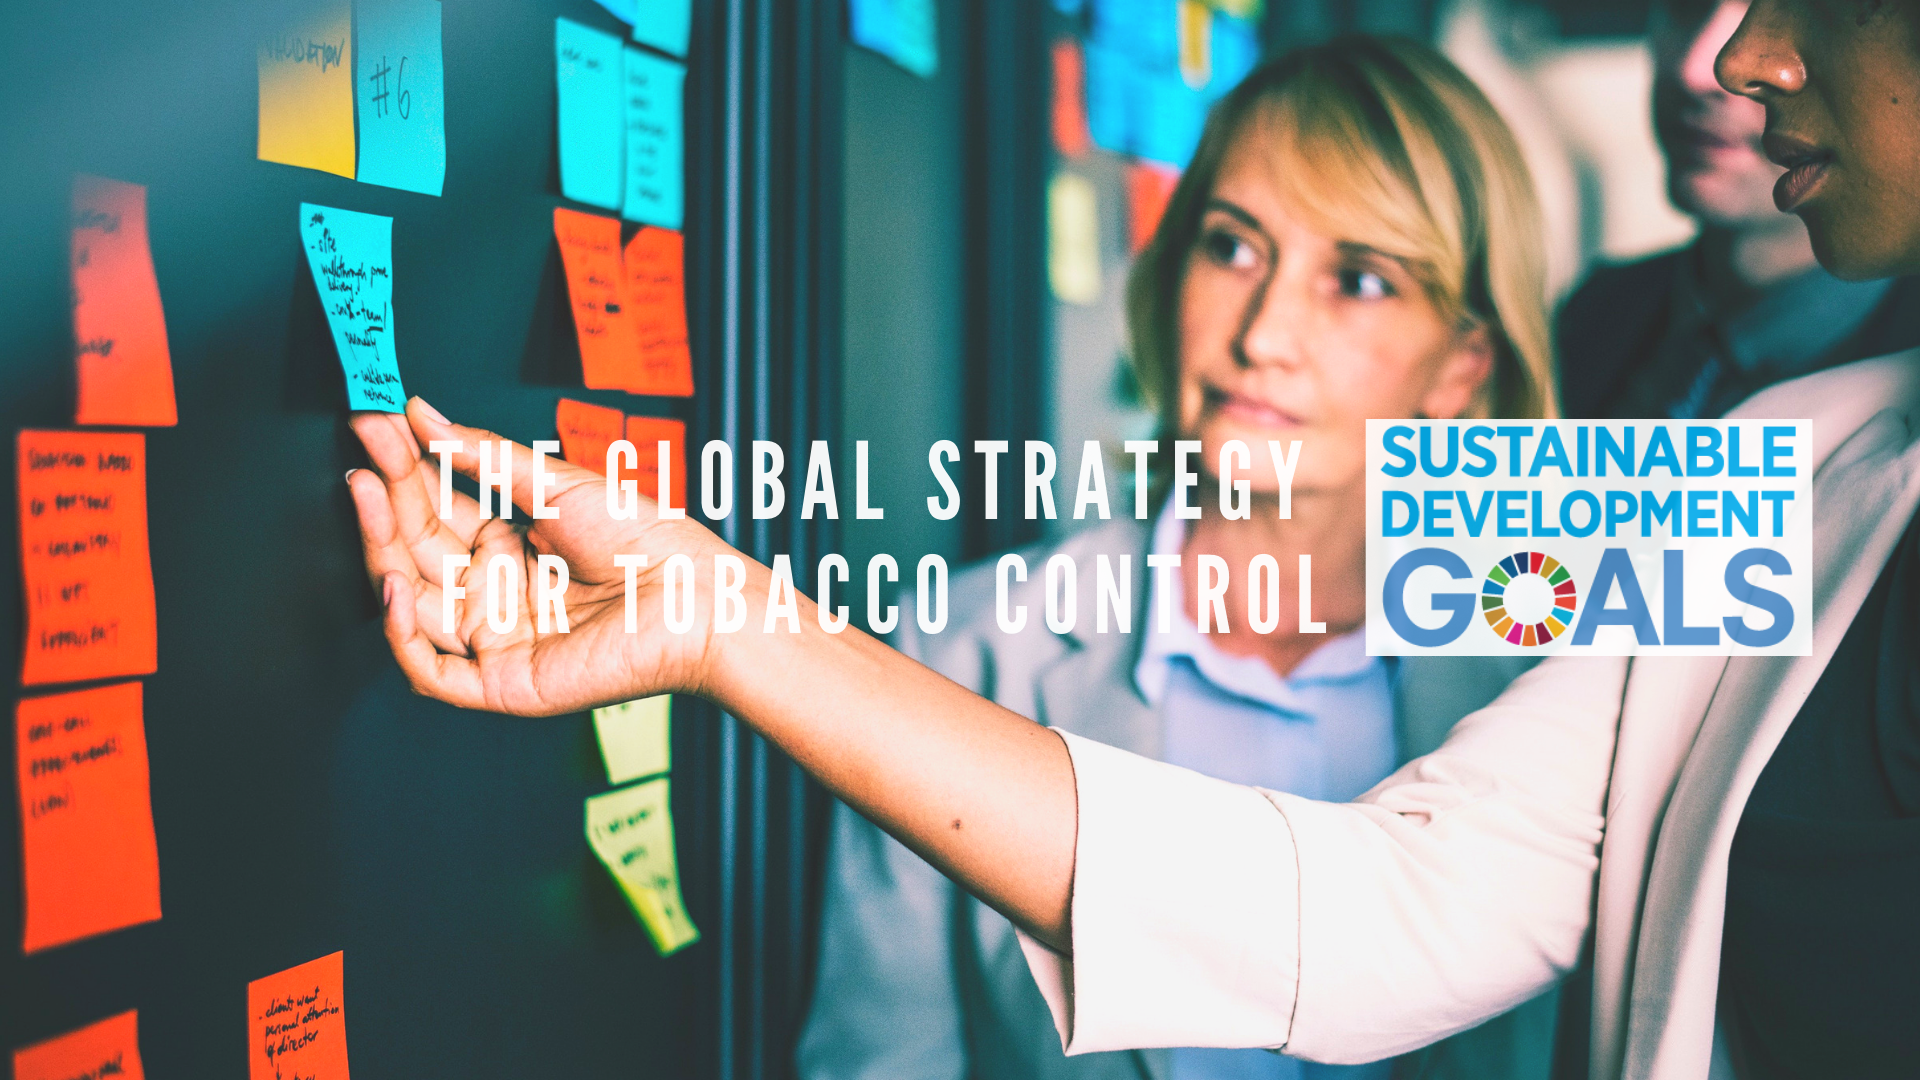 Global Strategy for Tobacco Control